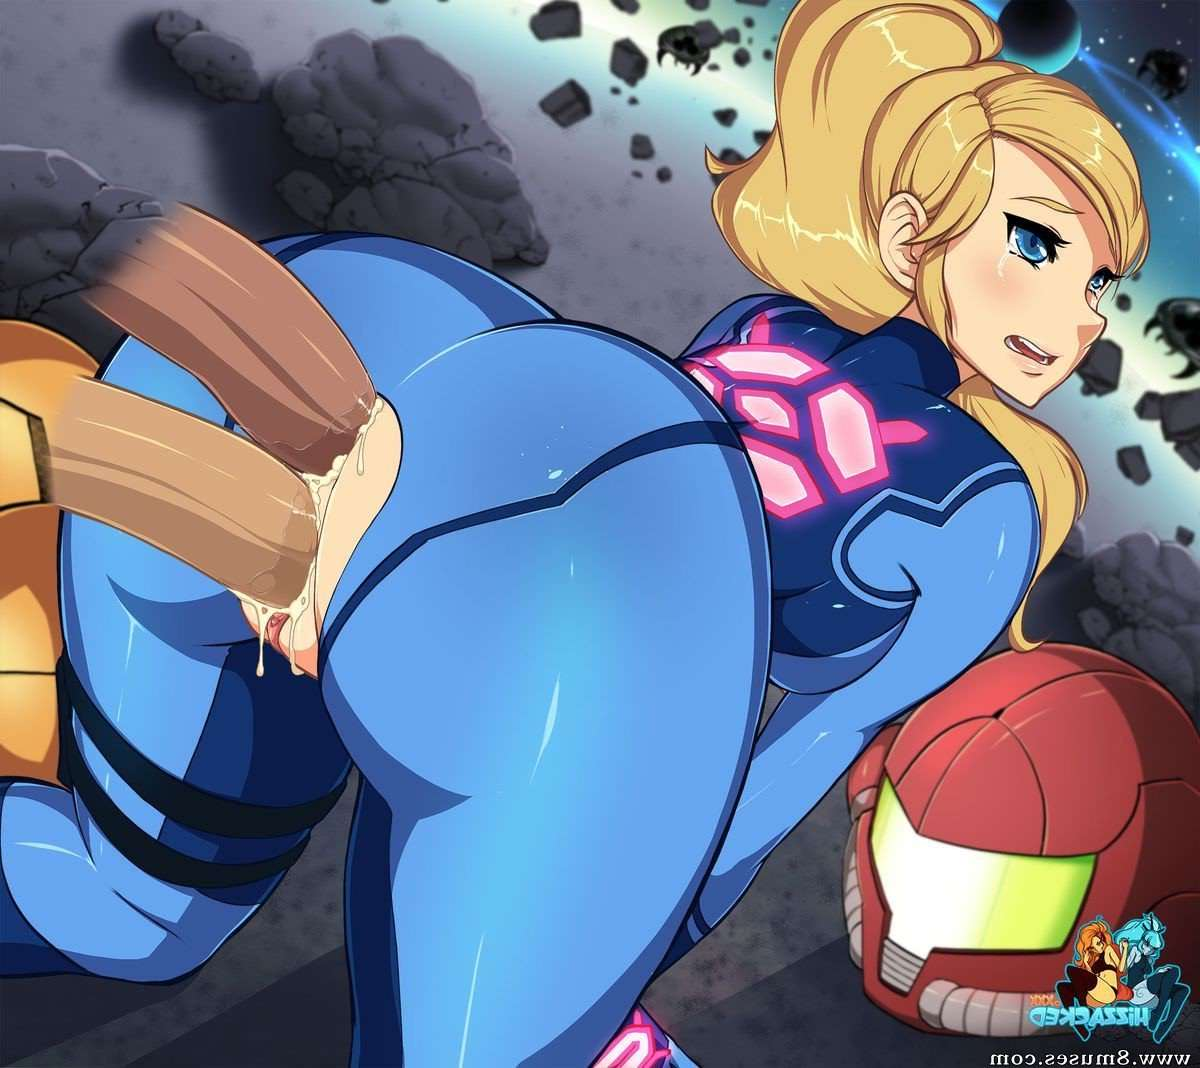 Hizzacked-Comics/Zero-Suit-Samus Zero_Suit_Samus__8muses_-_Sex_and_Porn_Comics_5.jpg